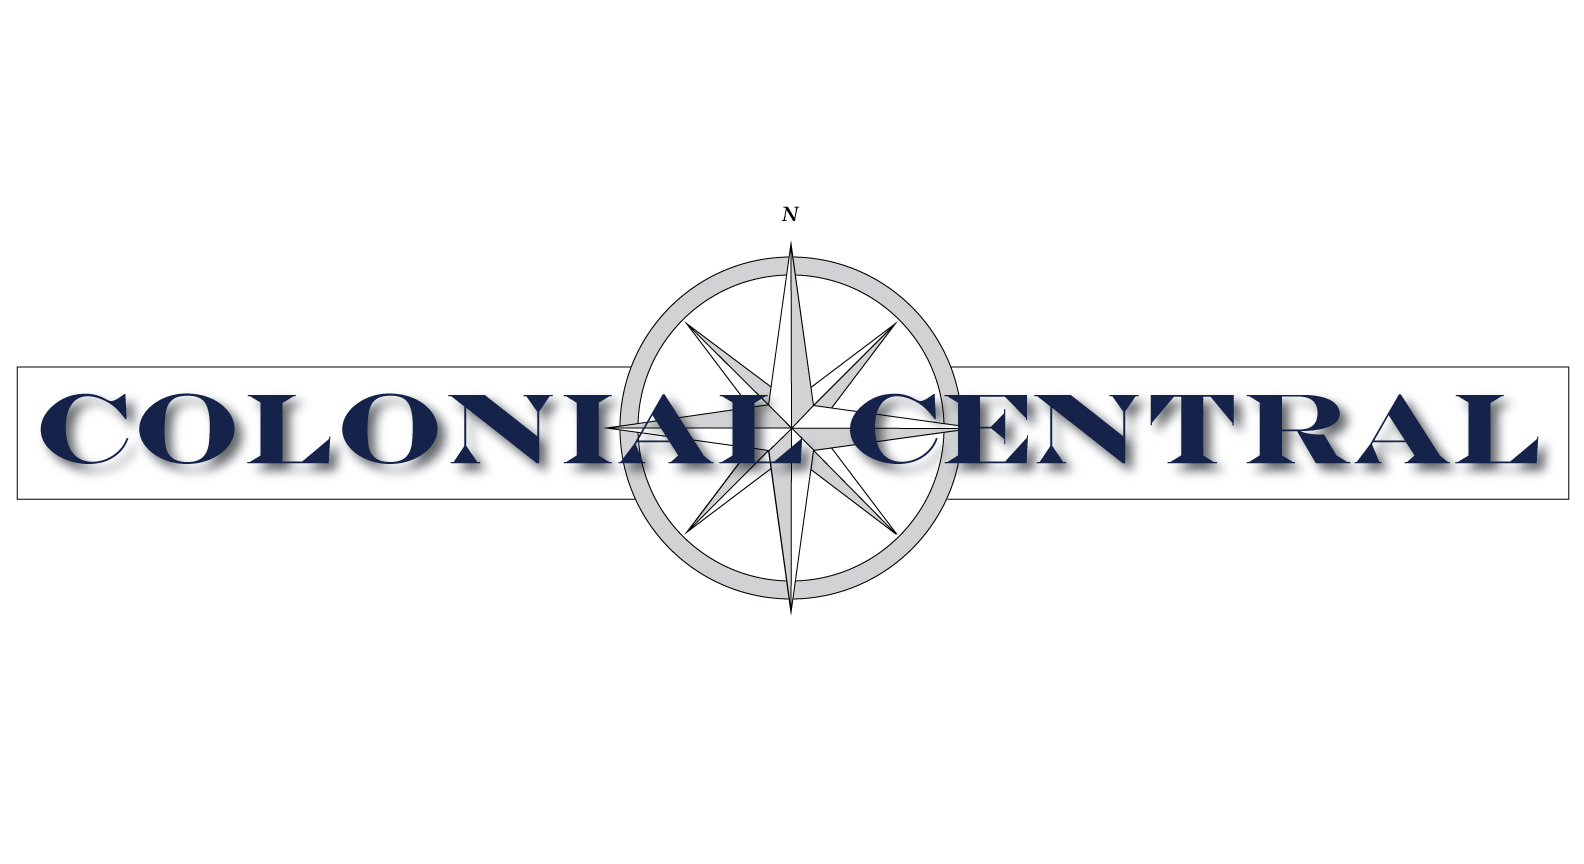 www.colonialcentral.com